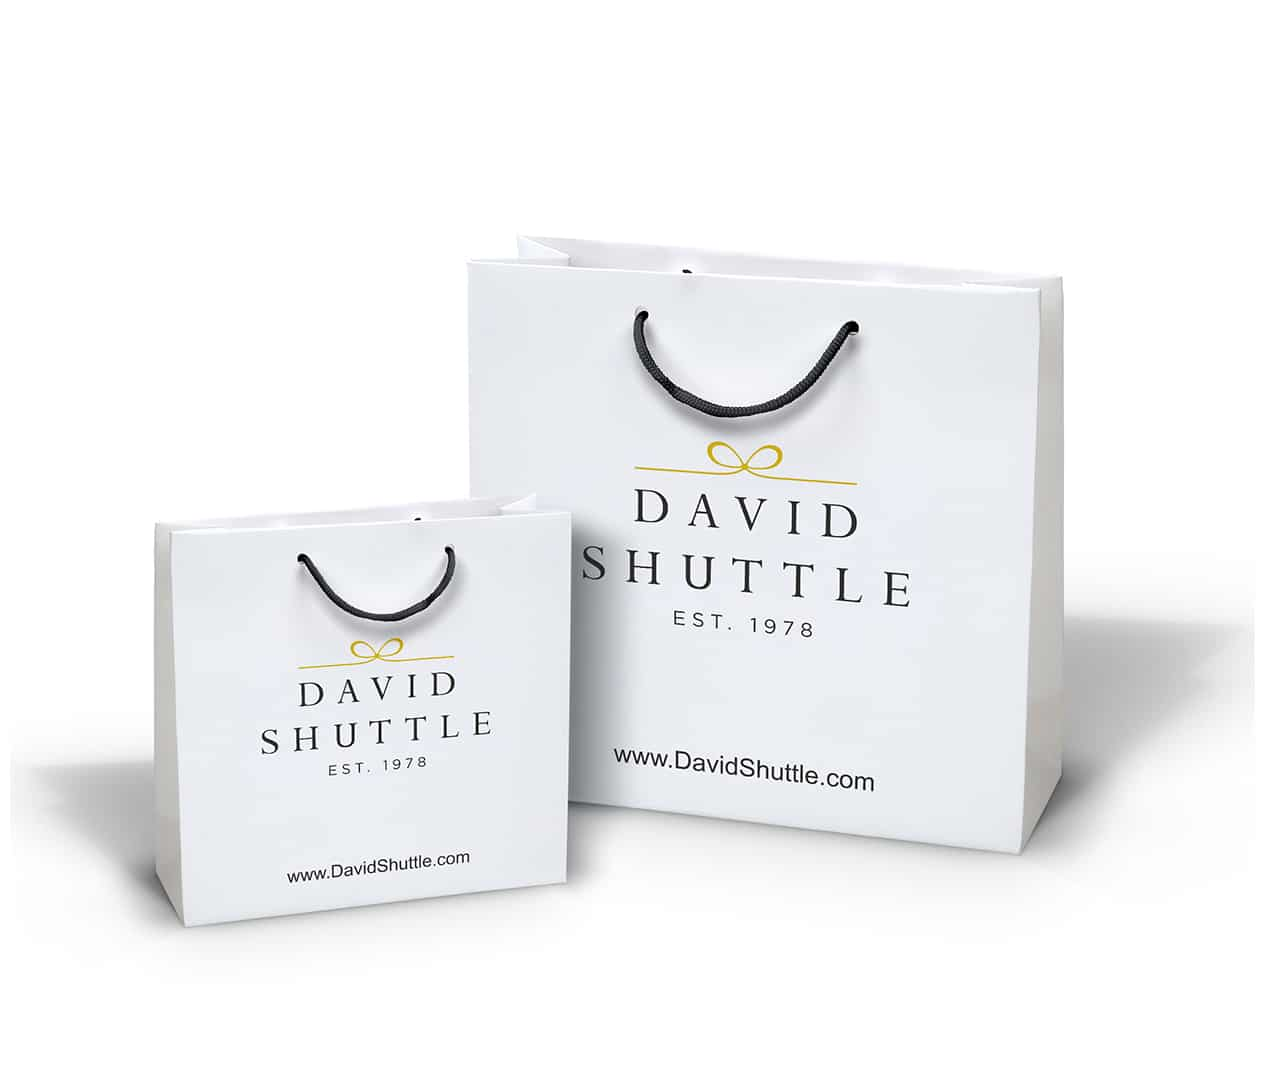 David Shuttle Printed Exhibition Bag